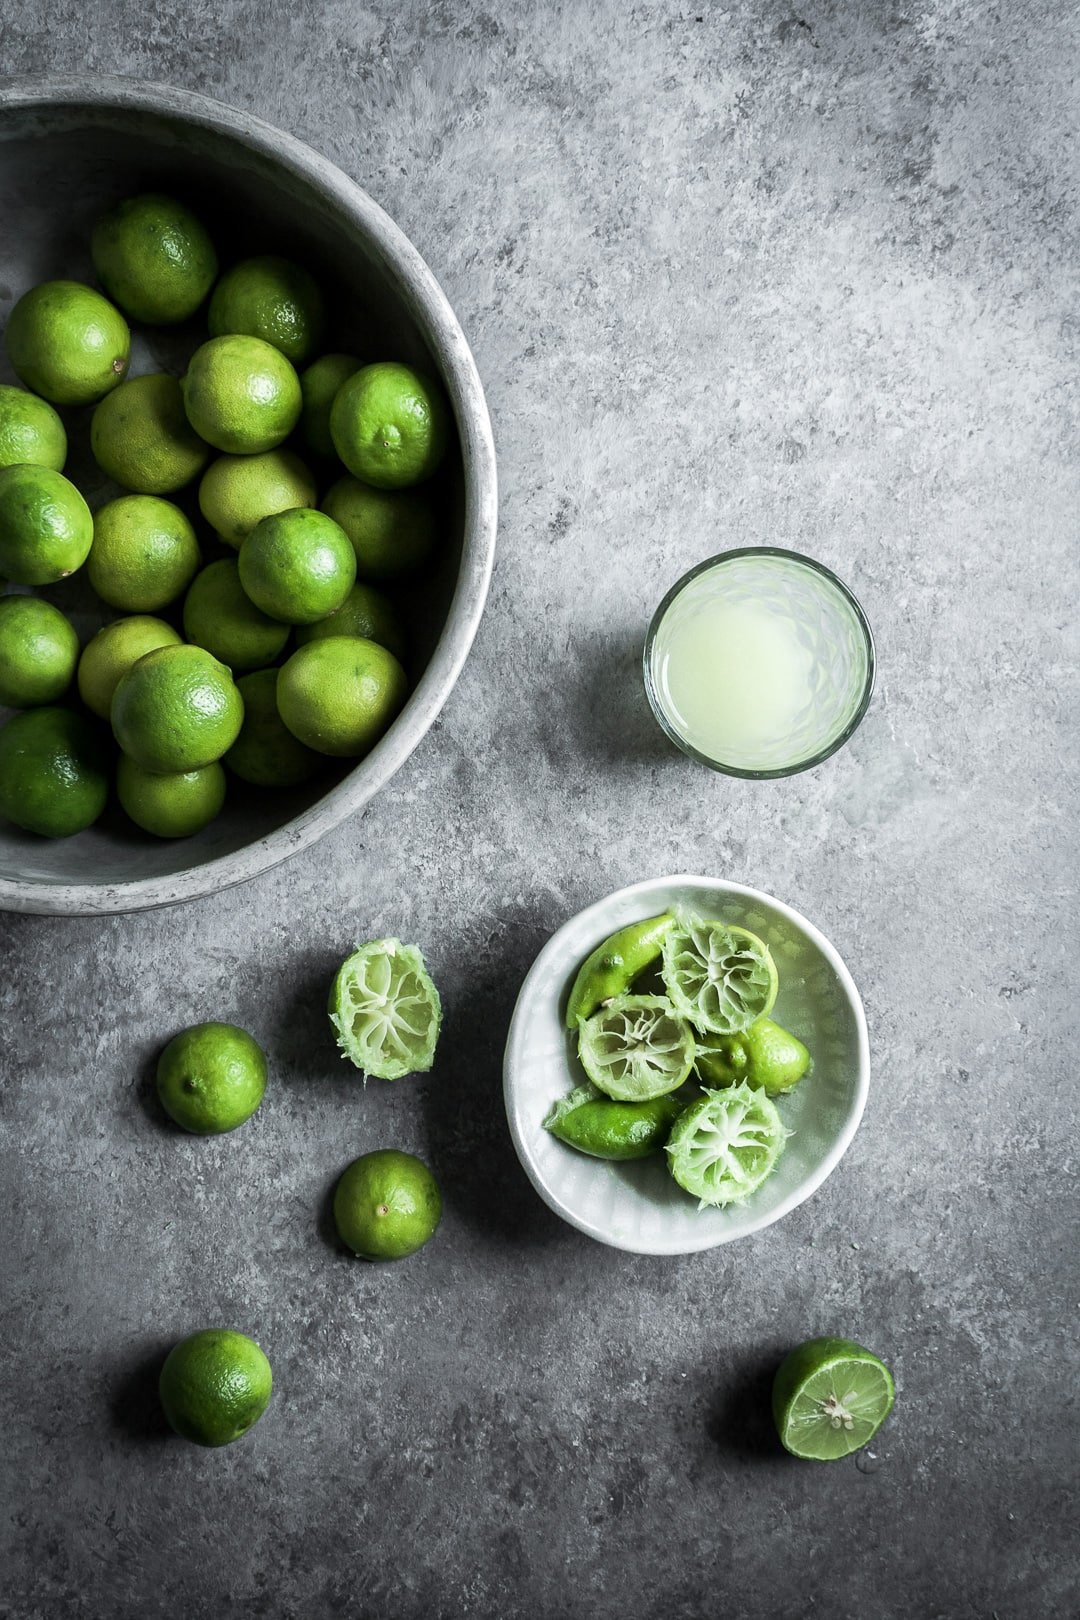 Key limes in a bowl, some cut in half and squeezed, with a glass of key lime juice on a grey background